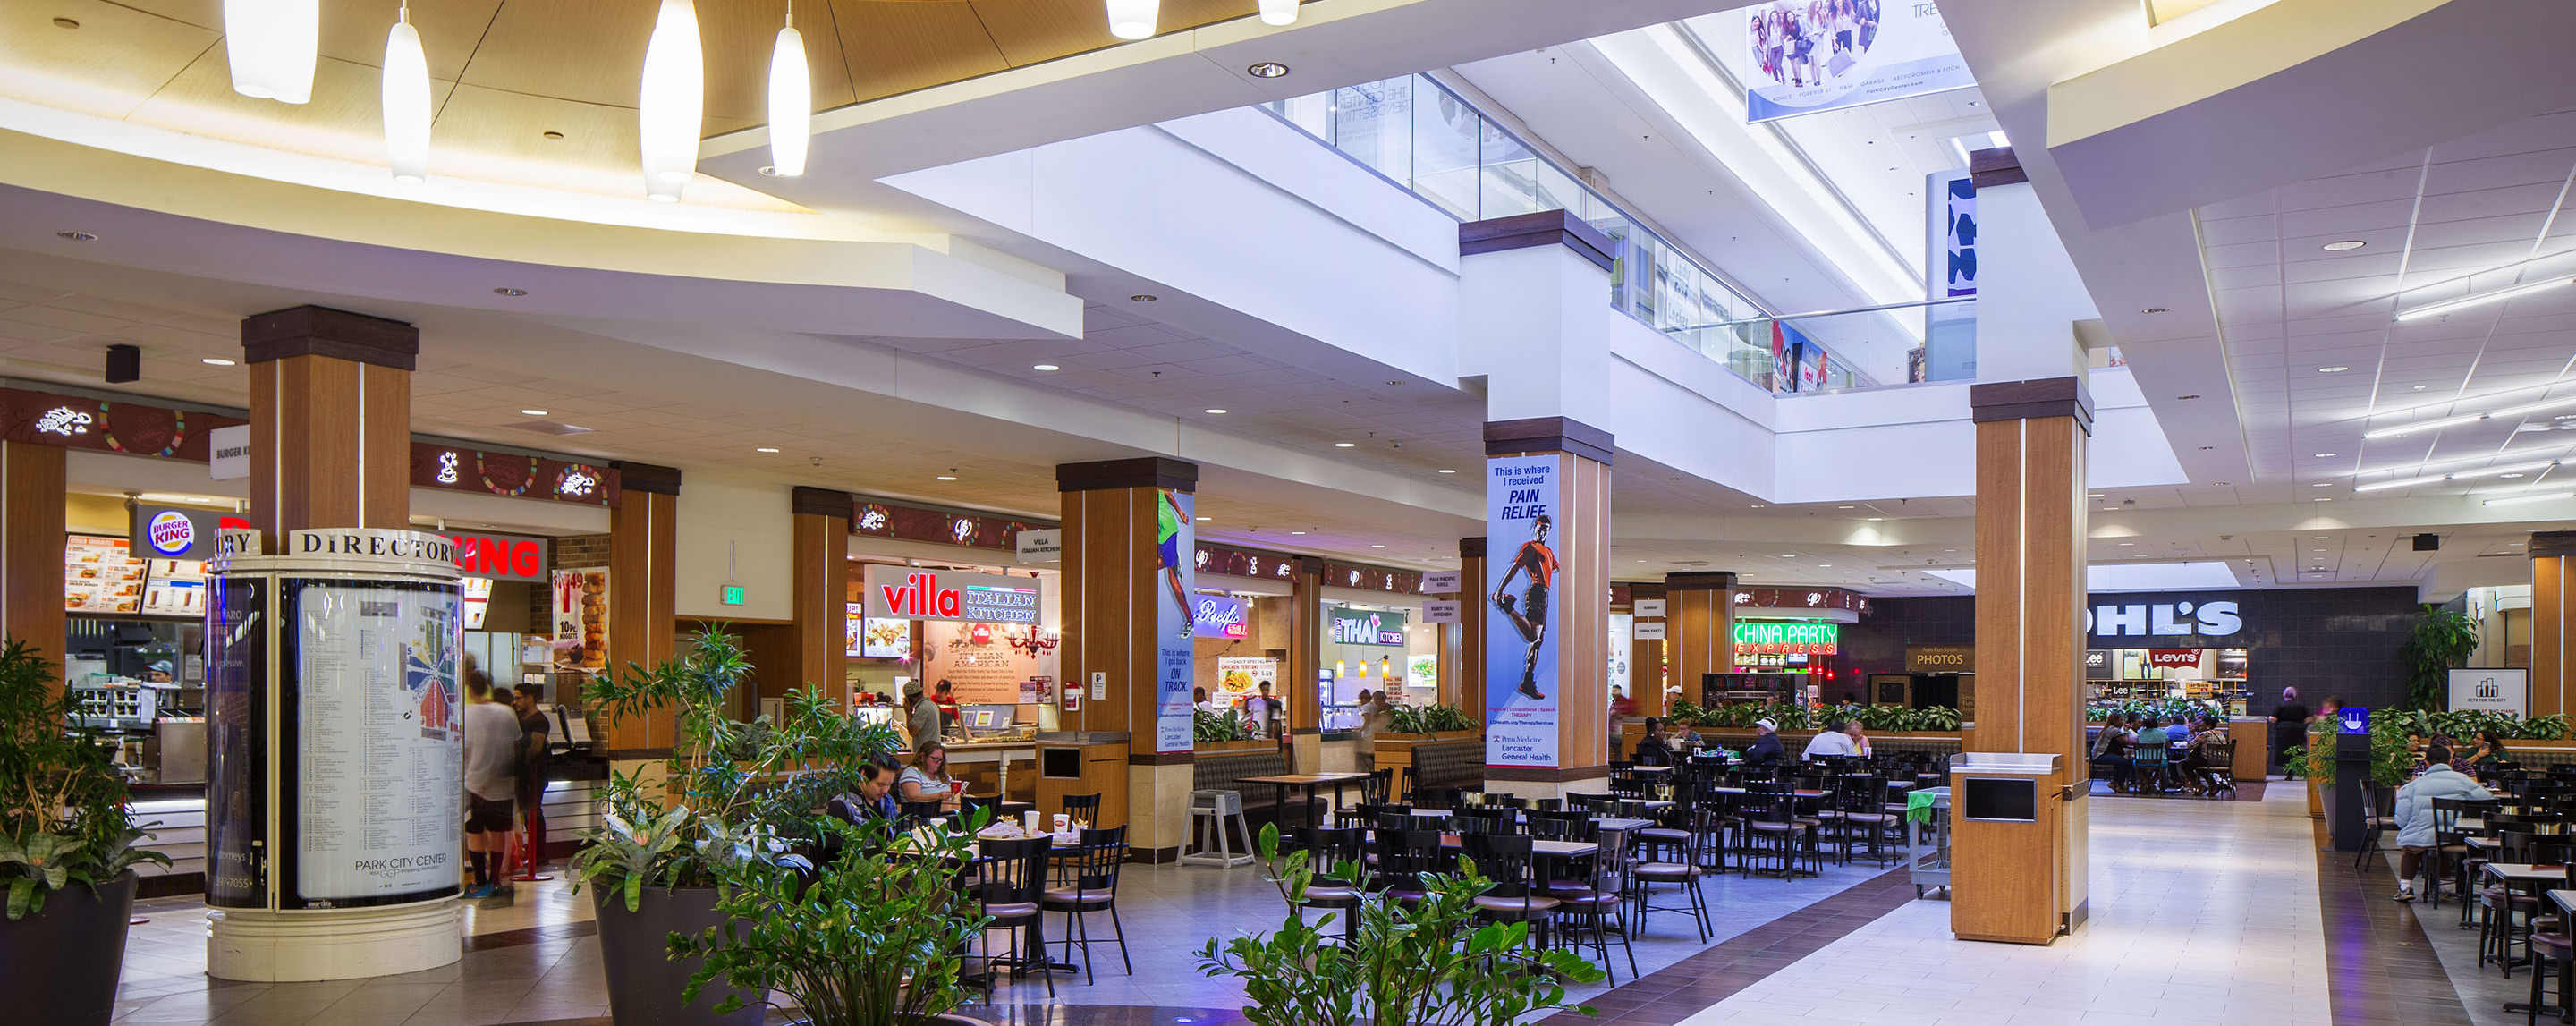 The Park City Center food court is filled with tables and chairs with a variety of dining options.